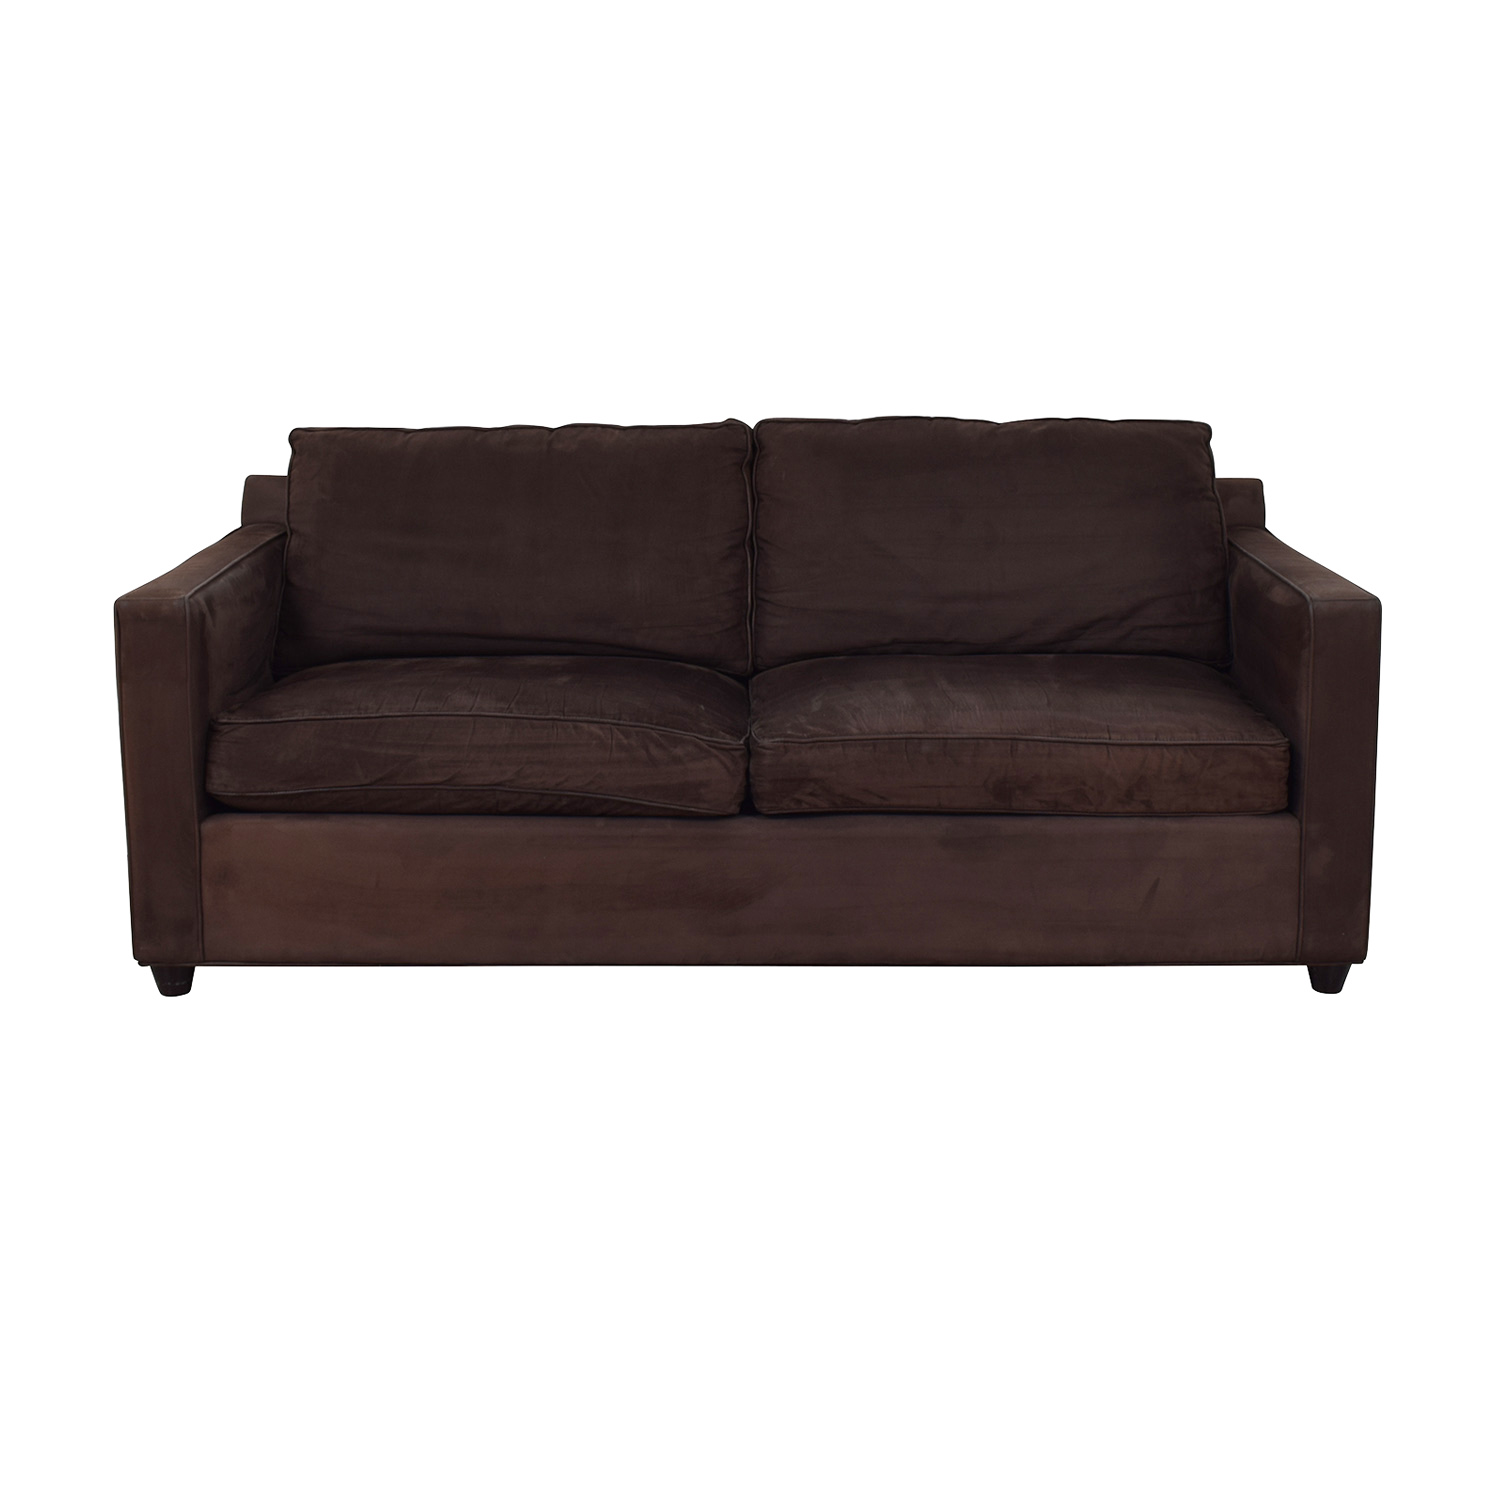 Crate & Barrel Crate & Barrel Two Seat Sofa for sale